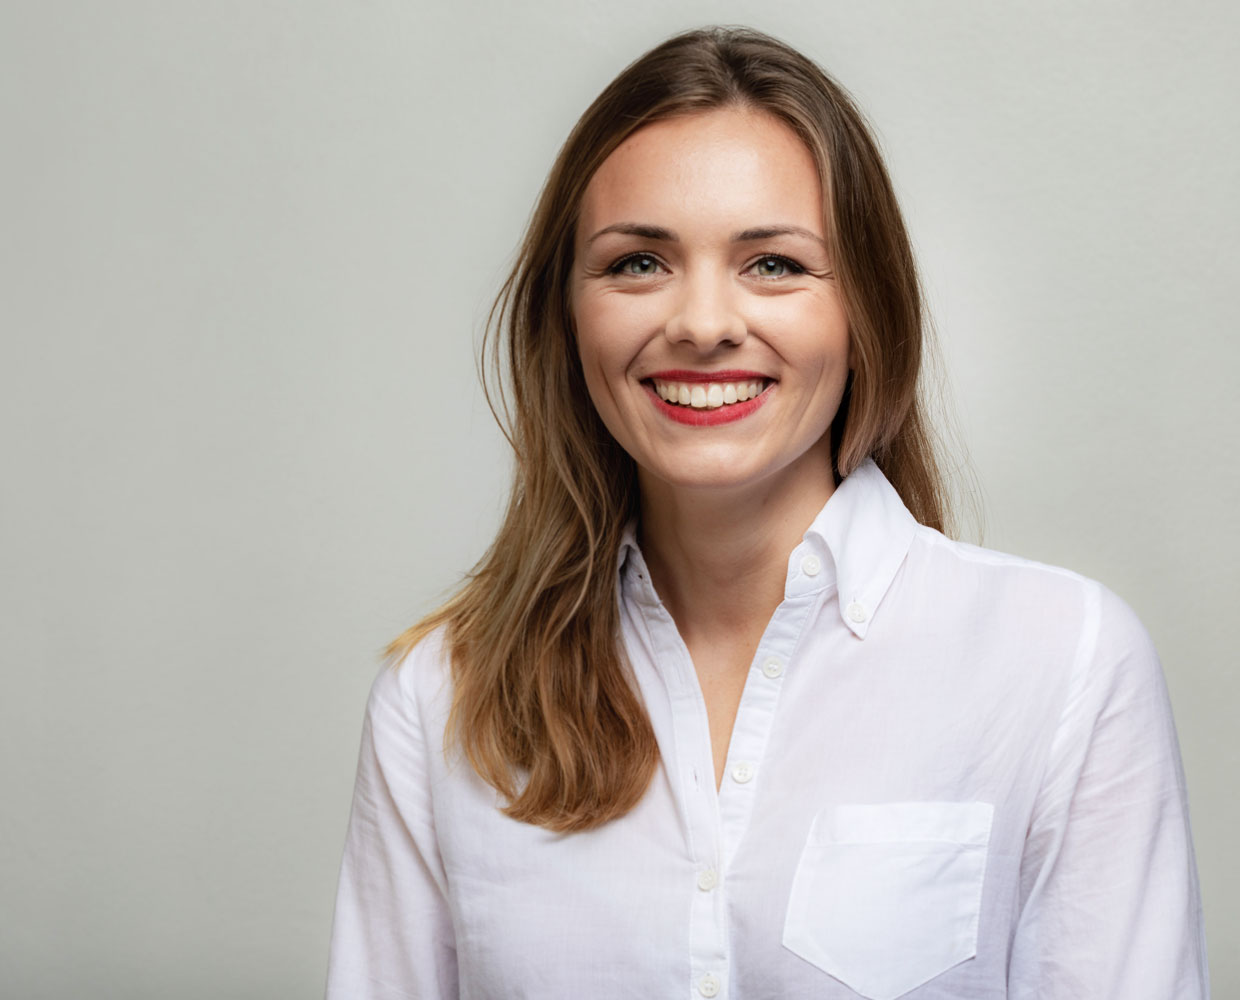 Charlotte Wernicke is smiling friendly